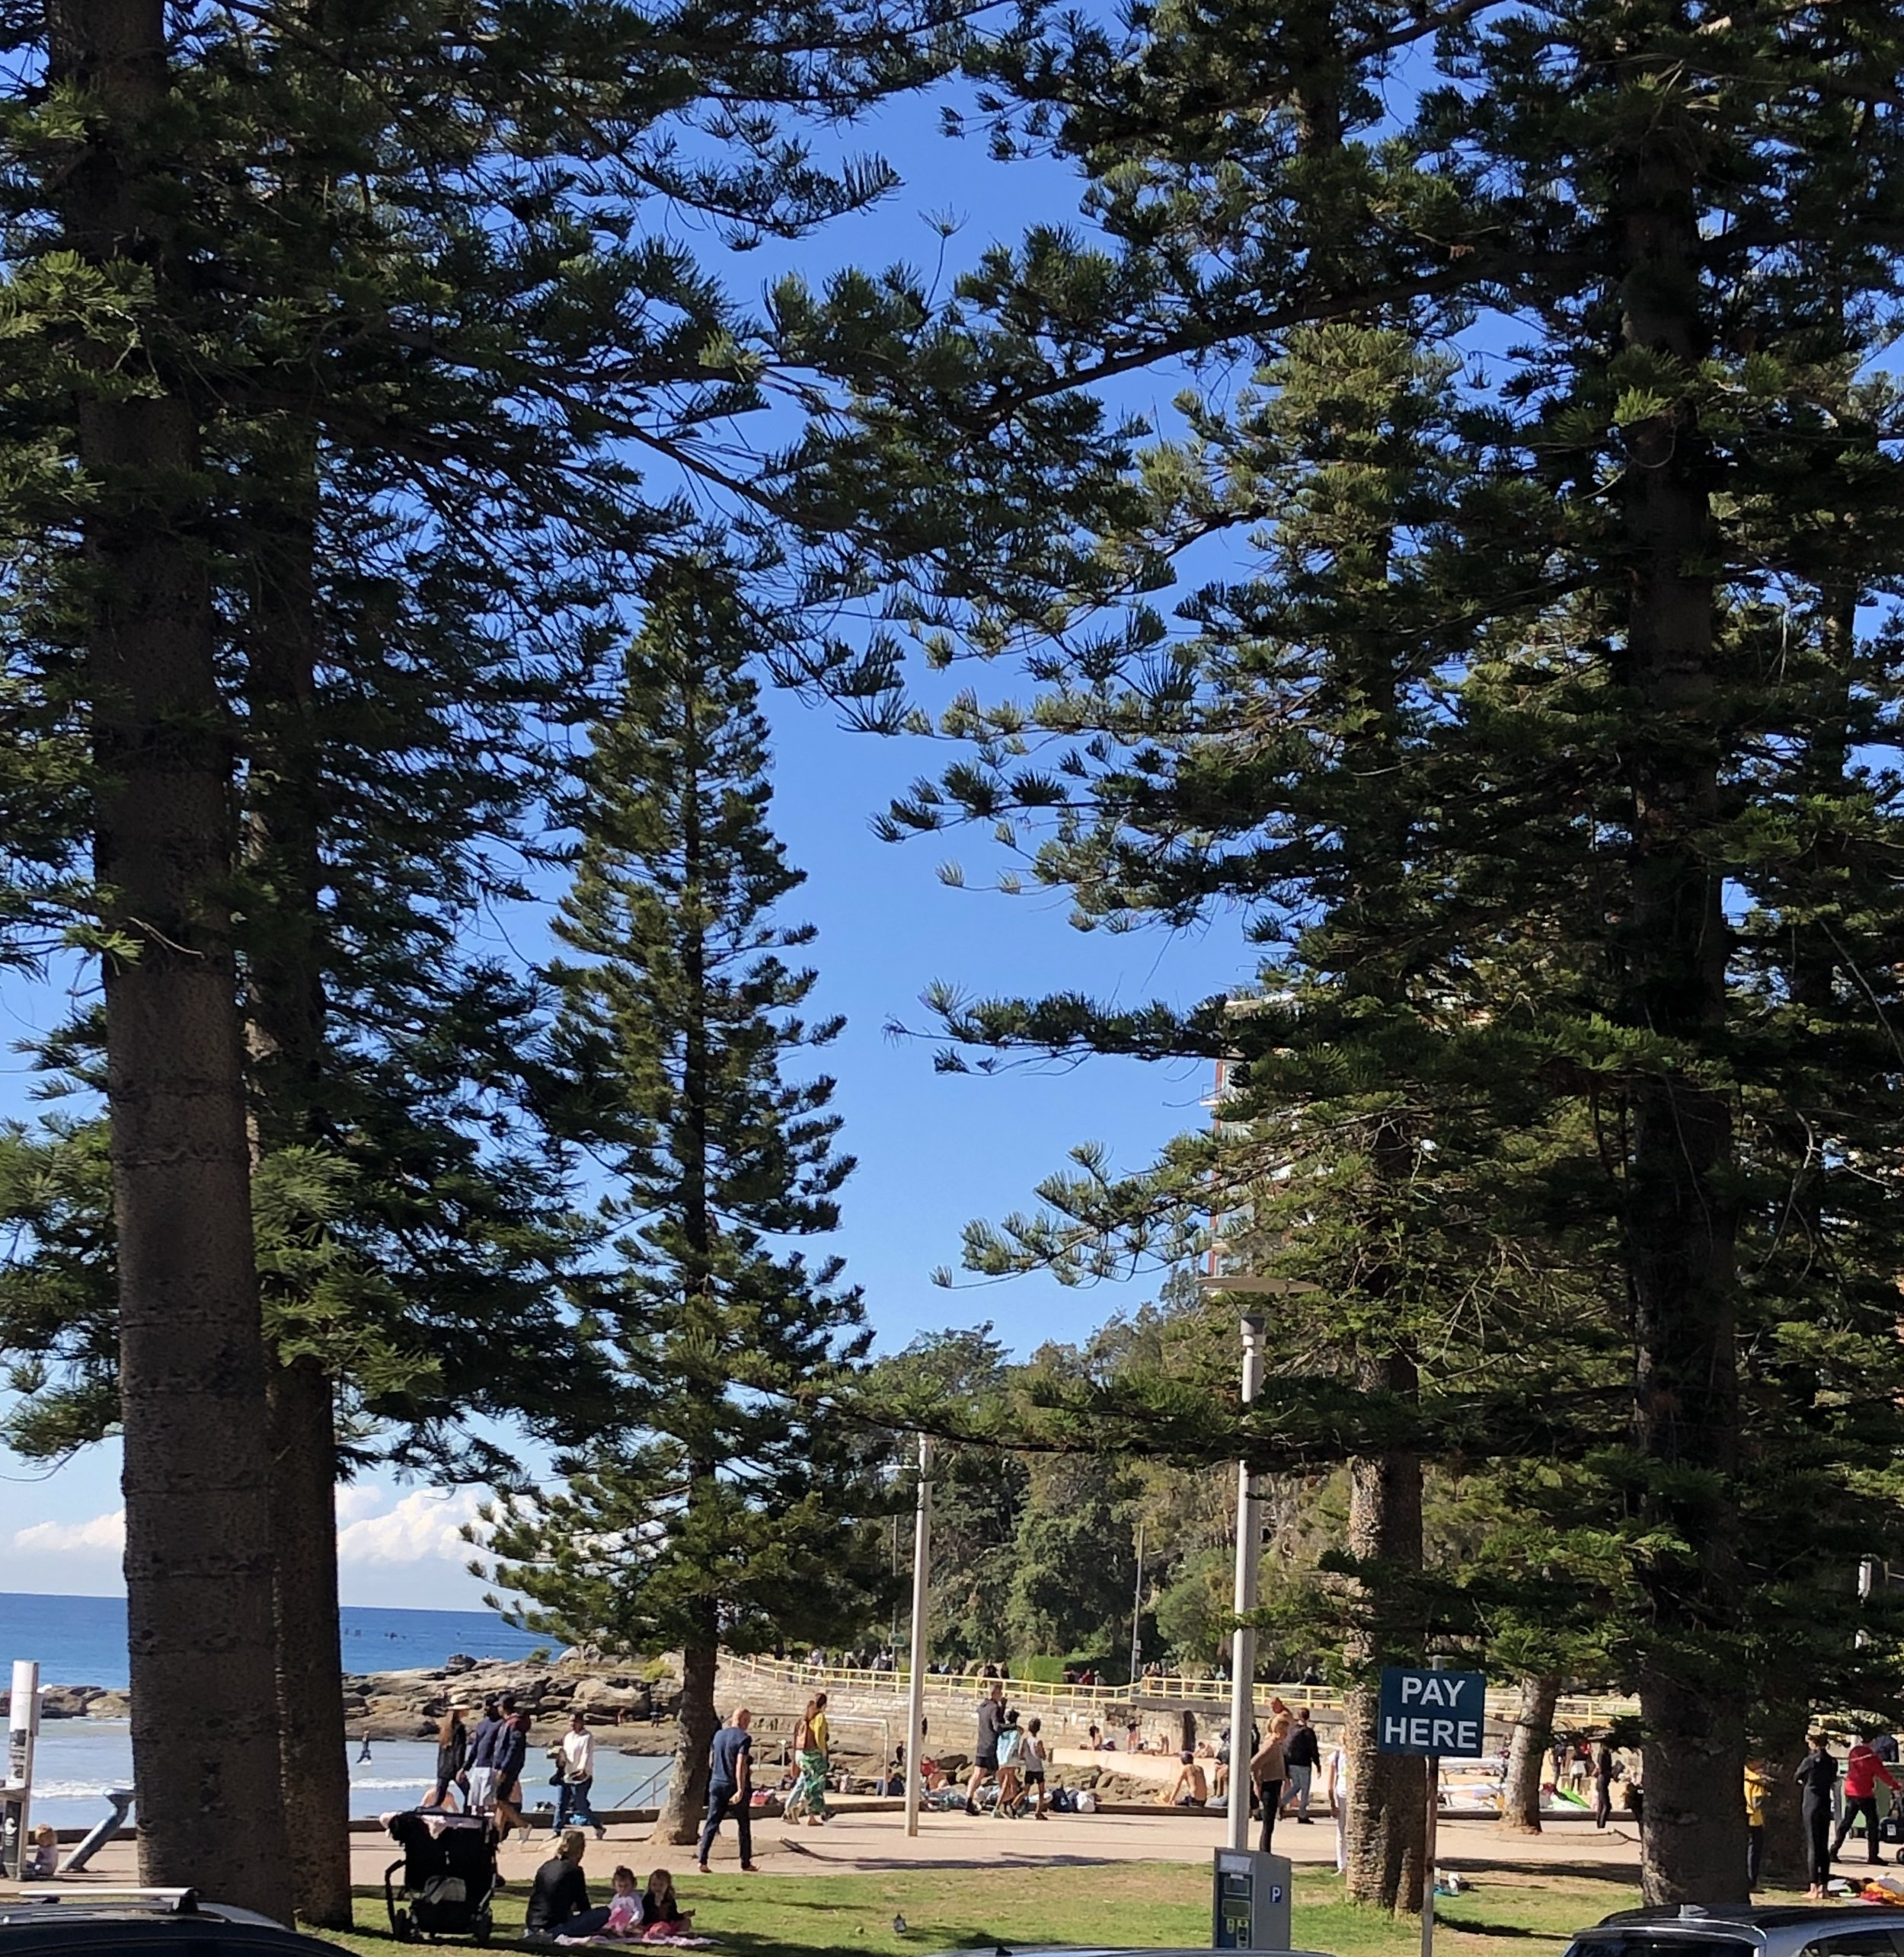 Manly beach yesterday…so many people out and about walking and swimming.